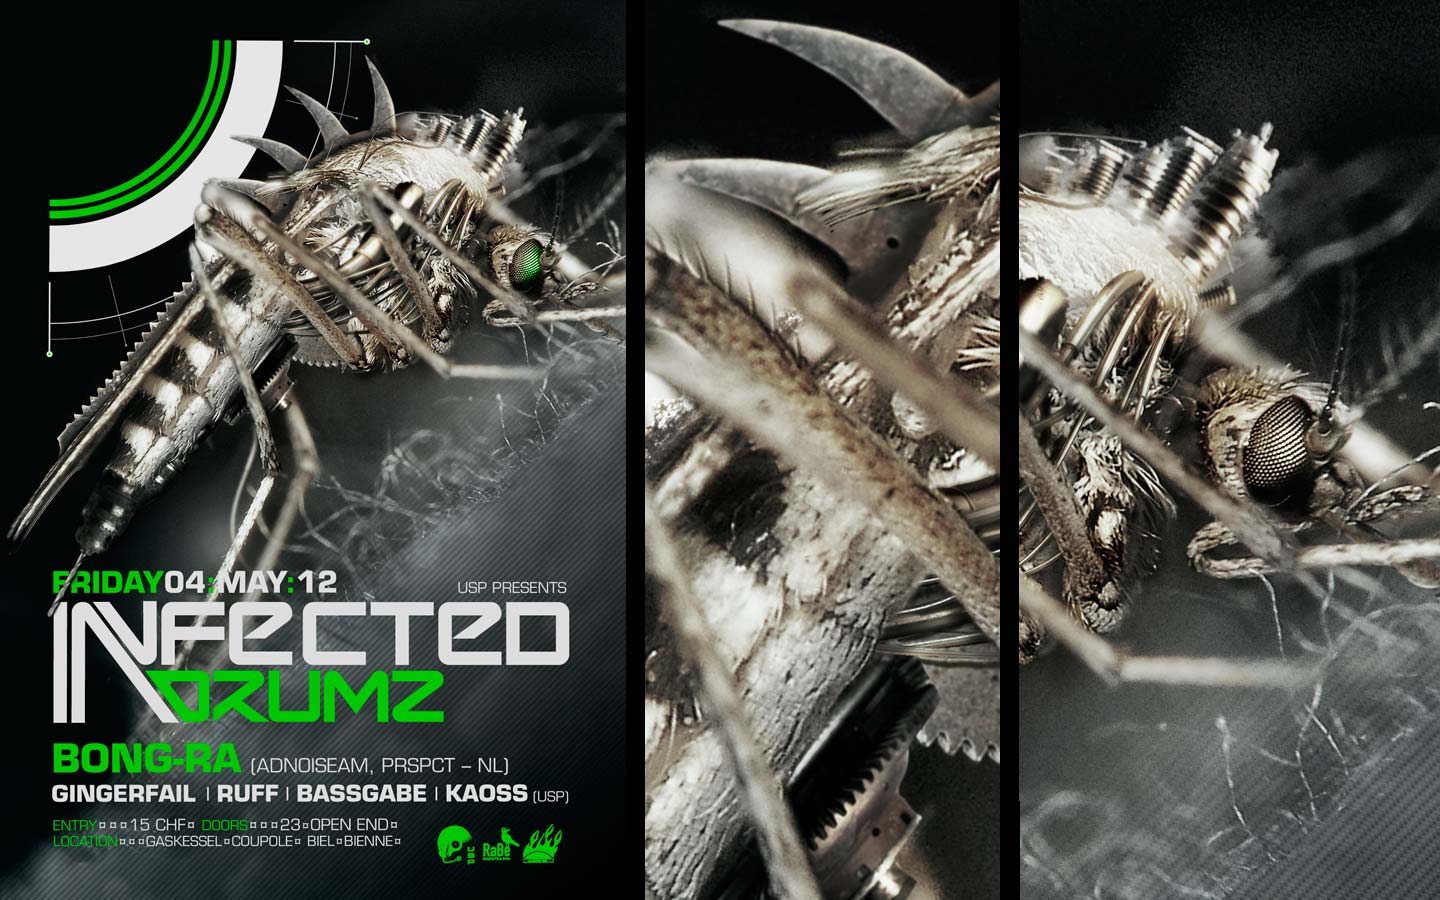 USP -Infected Drumz VII - Laurent Lemoigne - Donanubis - Don Anubis - Graphic Design - Flyer - Underground Sound Promotion - Coupole - Bienne - Art - Music - Electronic - Party - Event - Flyer - Poster - Industrial - Dark - Insect - Infectious - Infected - Mechanic - Biomechanic - Biomechanik - Biomechanical - Biomechanoid - Giger - Alternative - Underground - Geneva - Switzerland - Drum and Bass - d'n'b - Hard Drum - Bong-Ra / Adnoiseam / Prspct - Gingerfail - Ruff - Bassgabe - Kaoss - Metal - Hard - Rock - Death - Band - Illustration